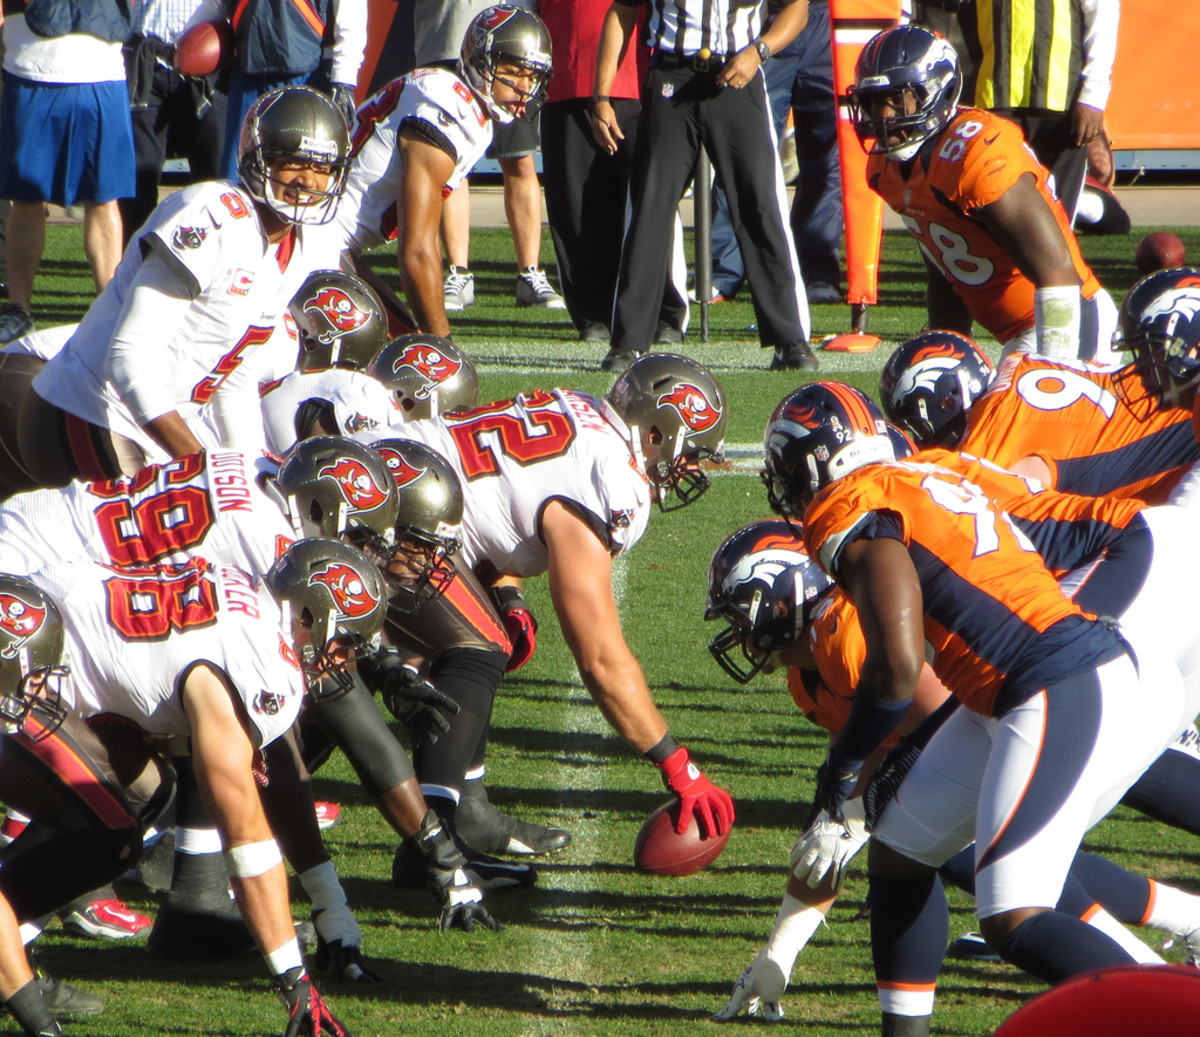 The line of scrimmage between two teams.